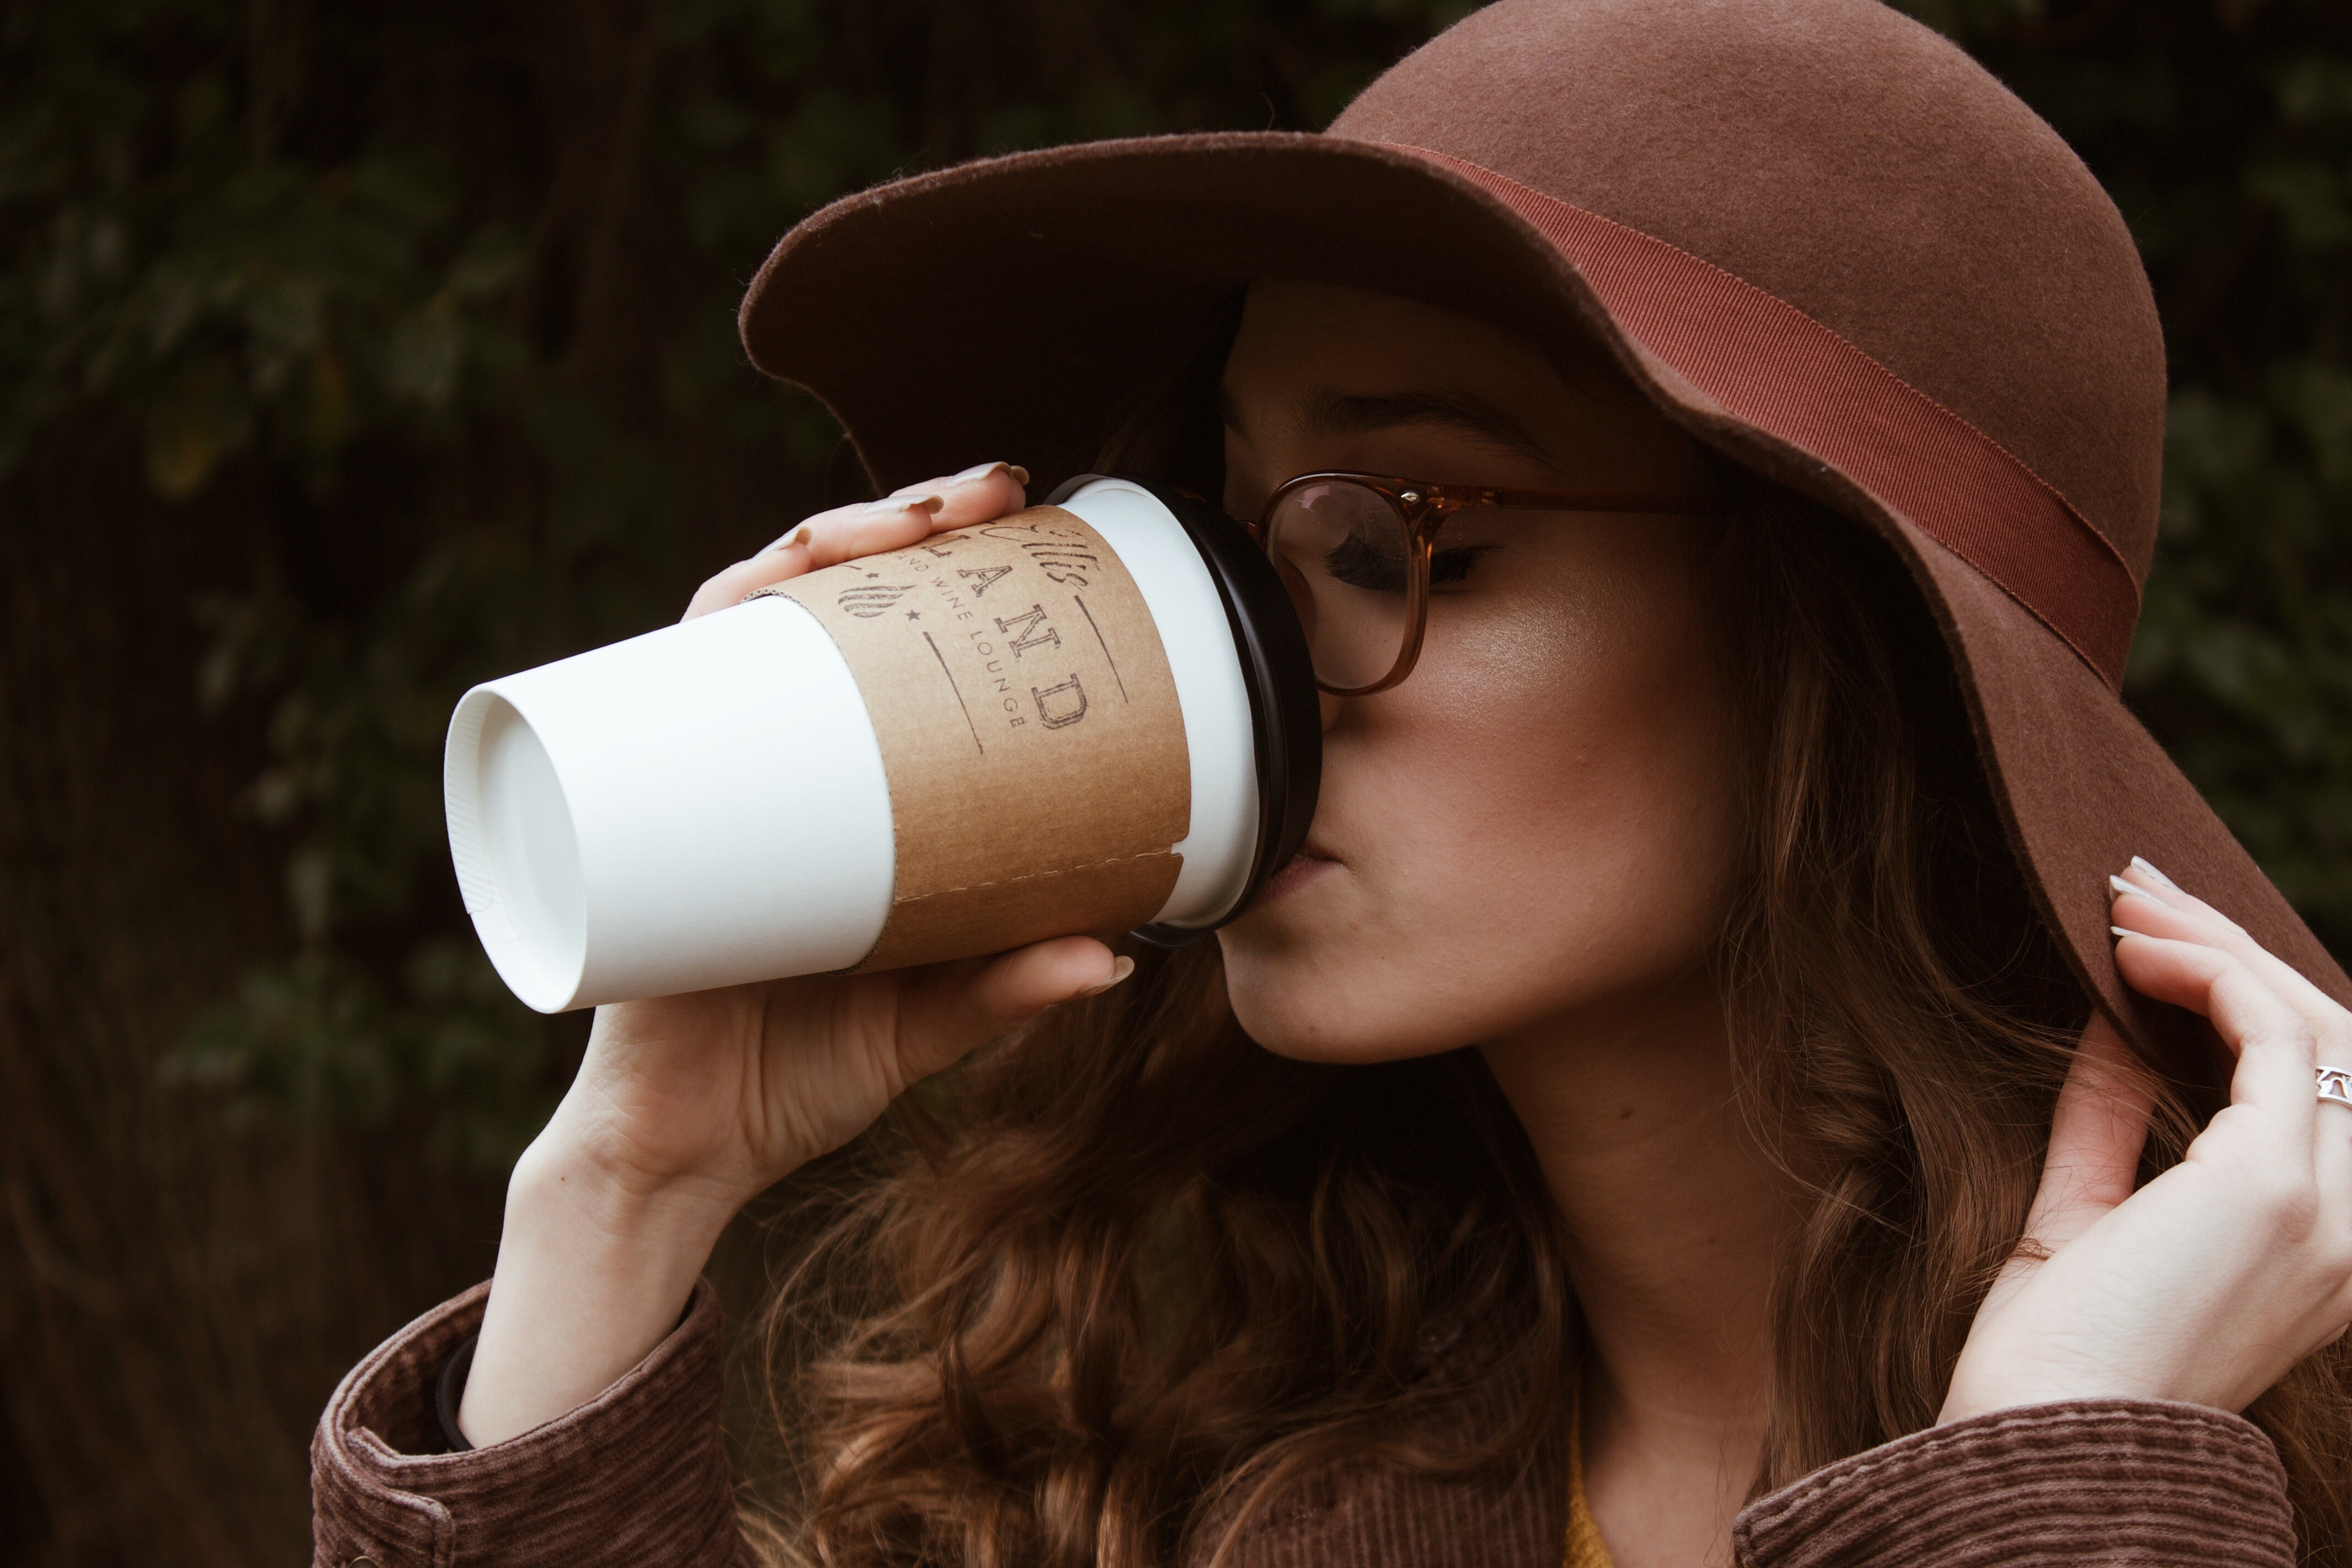 woman with brown hat and tortoiseshell framed eyeglasses drinking coffee in plastic cup